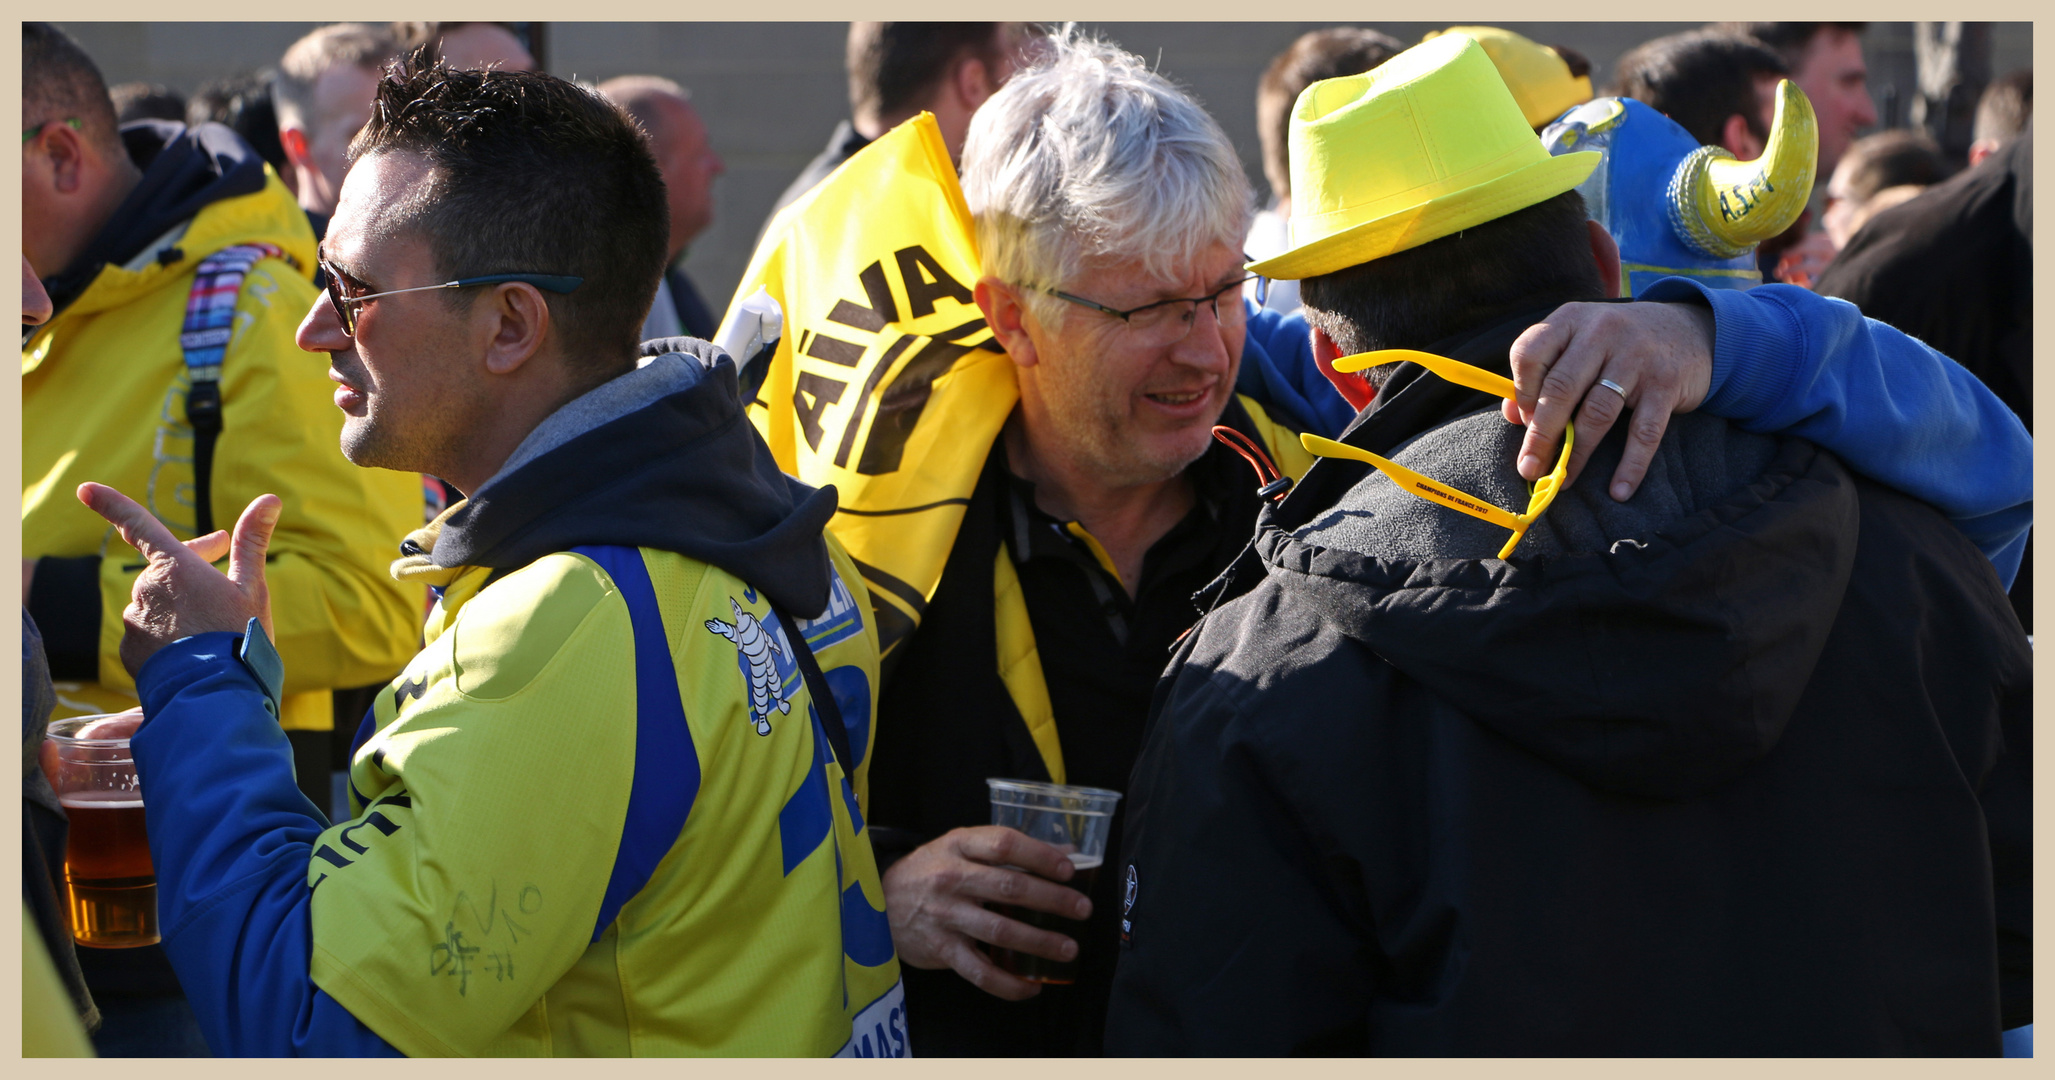 Clermont rugby fans 32 in newcastle